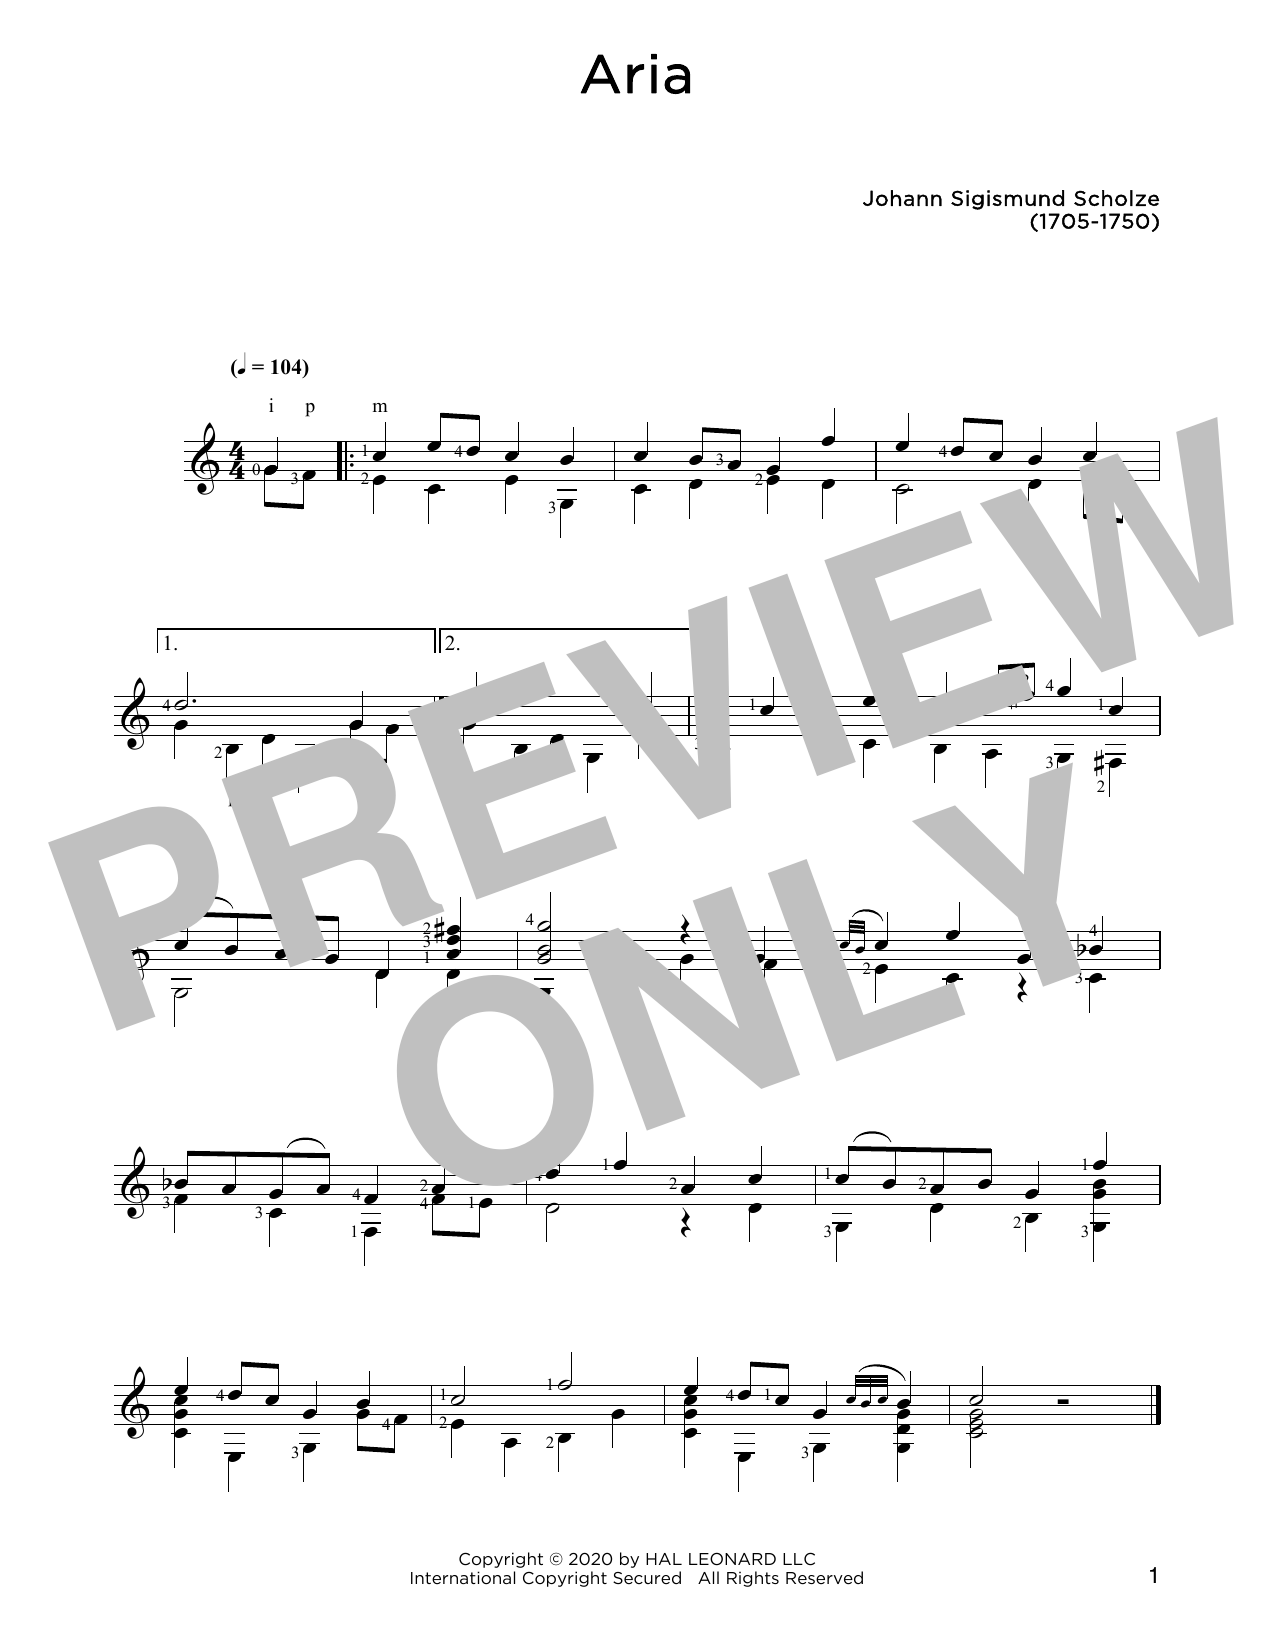 Johann Sigismund Scholze Aria sheet music notes and chords. Download Printable PDF.